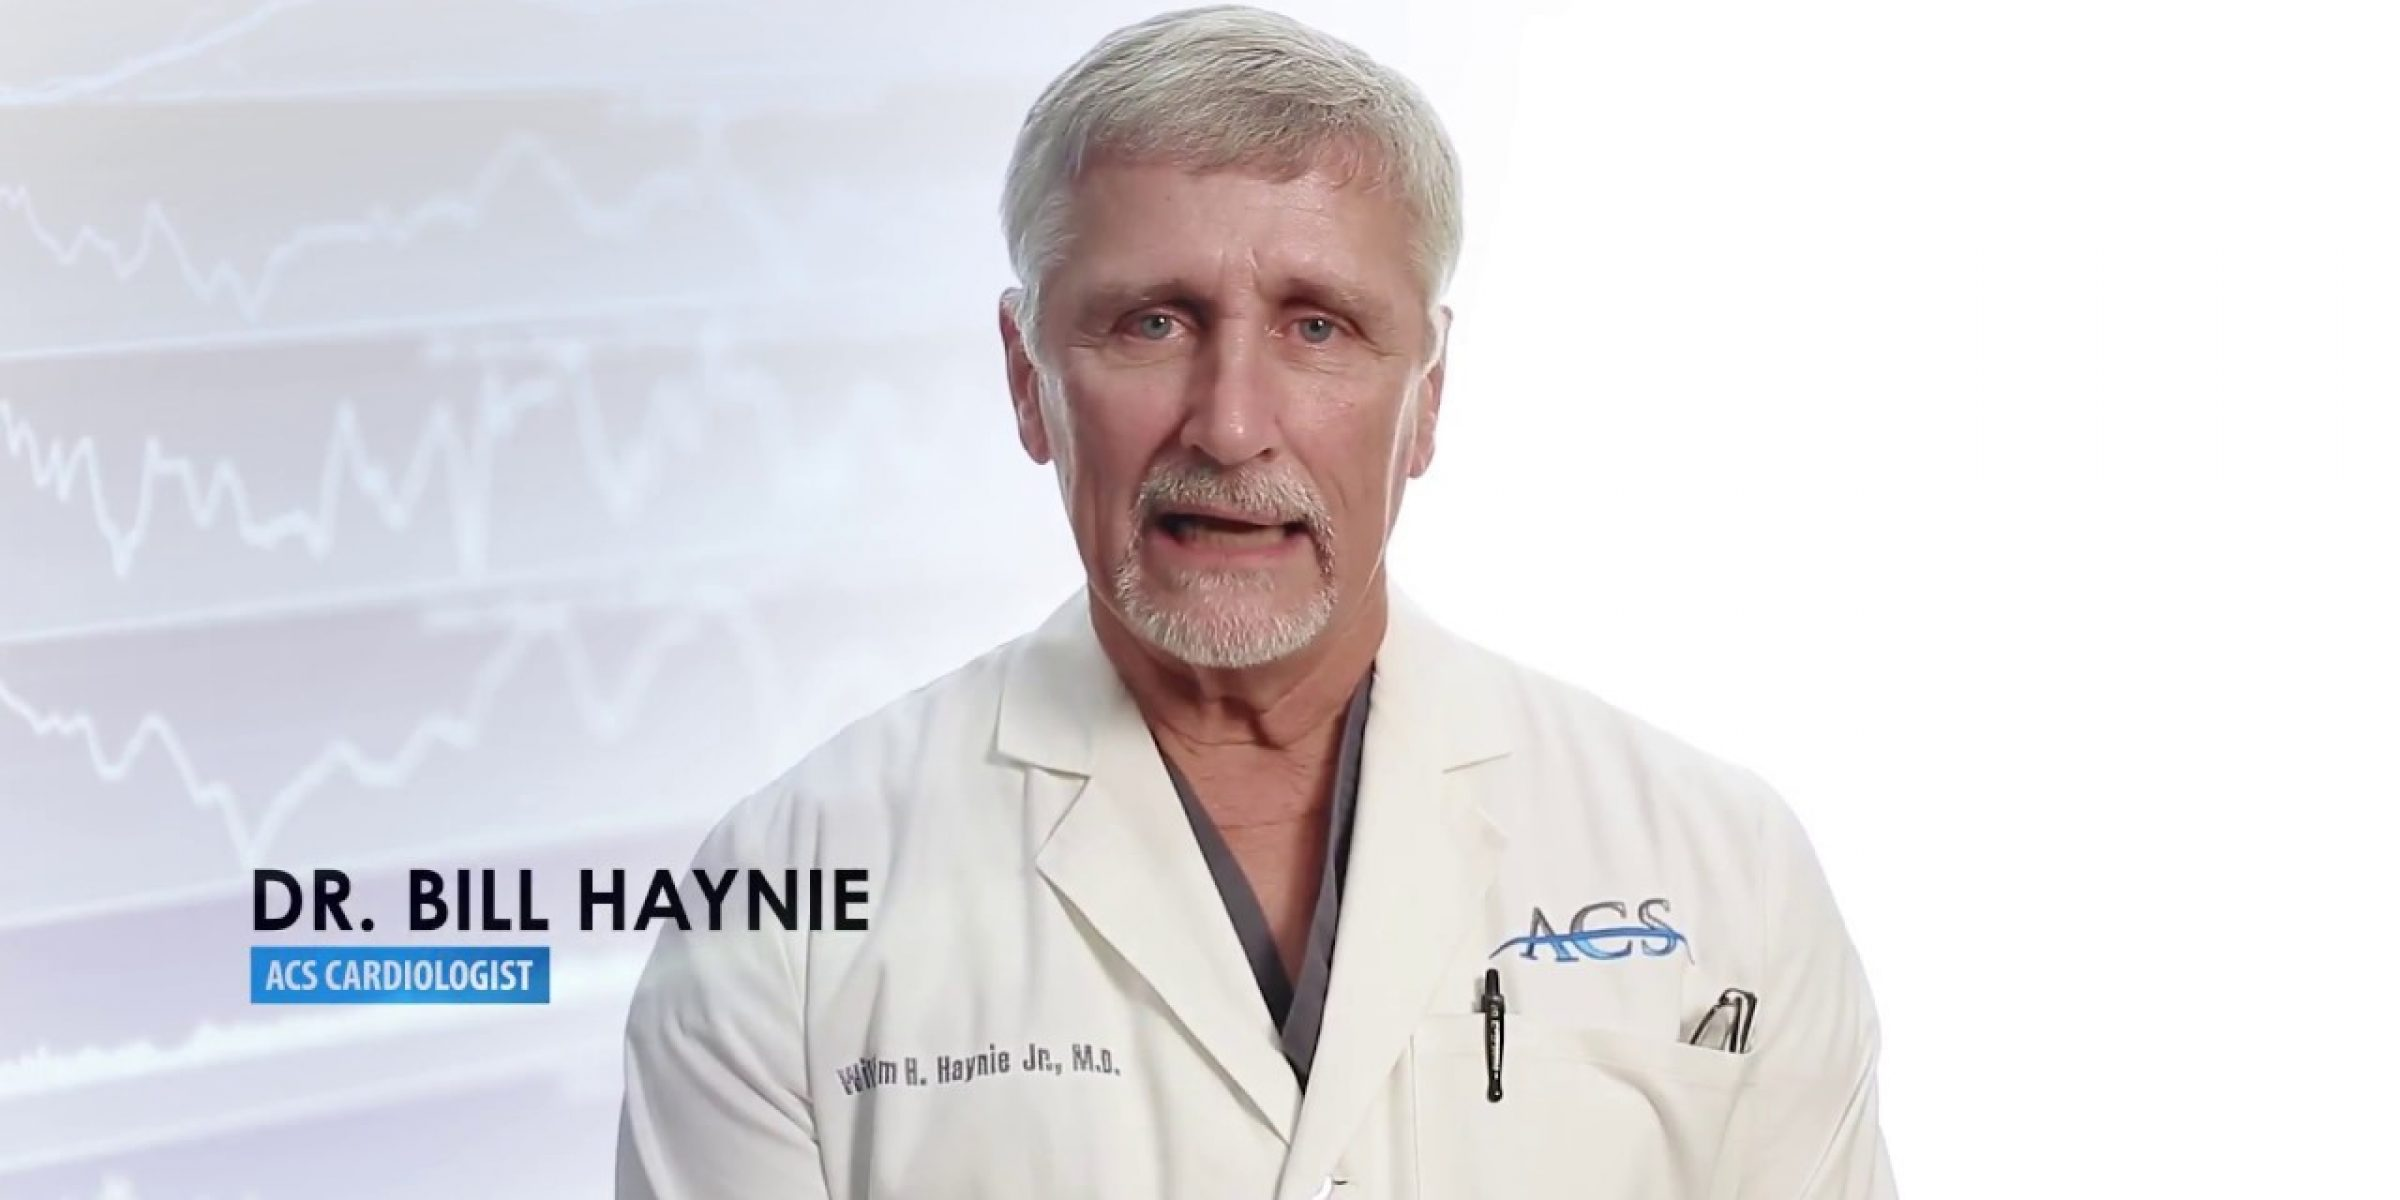 acs, advanced cardiovascular specialists, cardiology, shreveport cardiology, louisiana cardiology, haynie shreveport, haynie cardiology, heart health